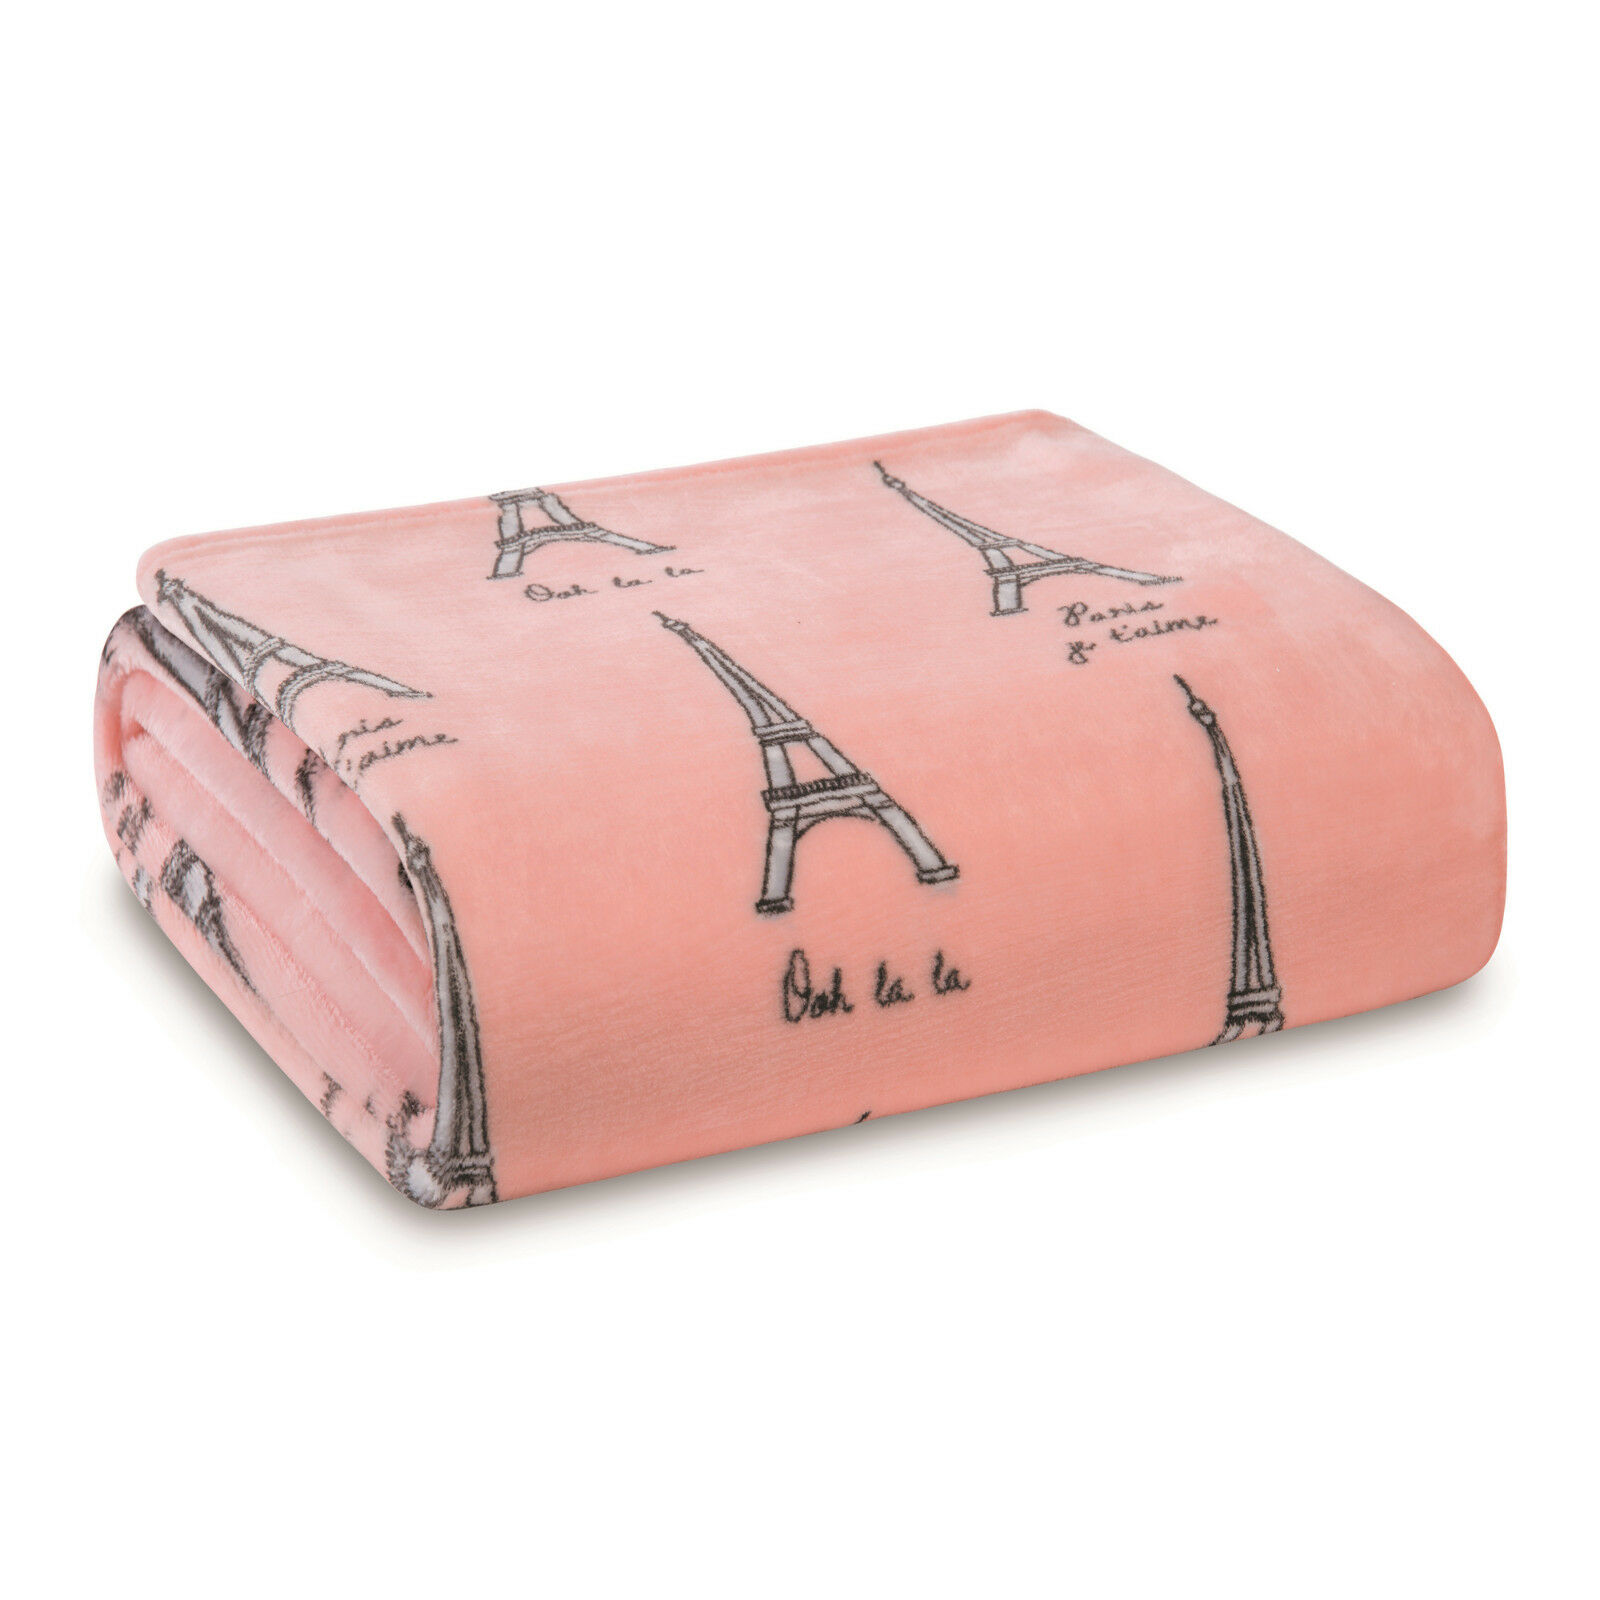 Paris Blanket Throw Velvet Plush Cozy Eiffel Tower, Pink and